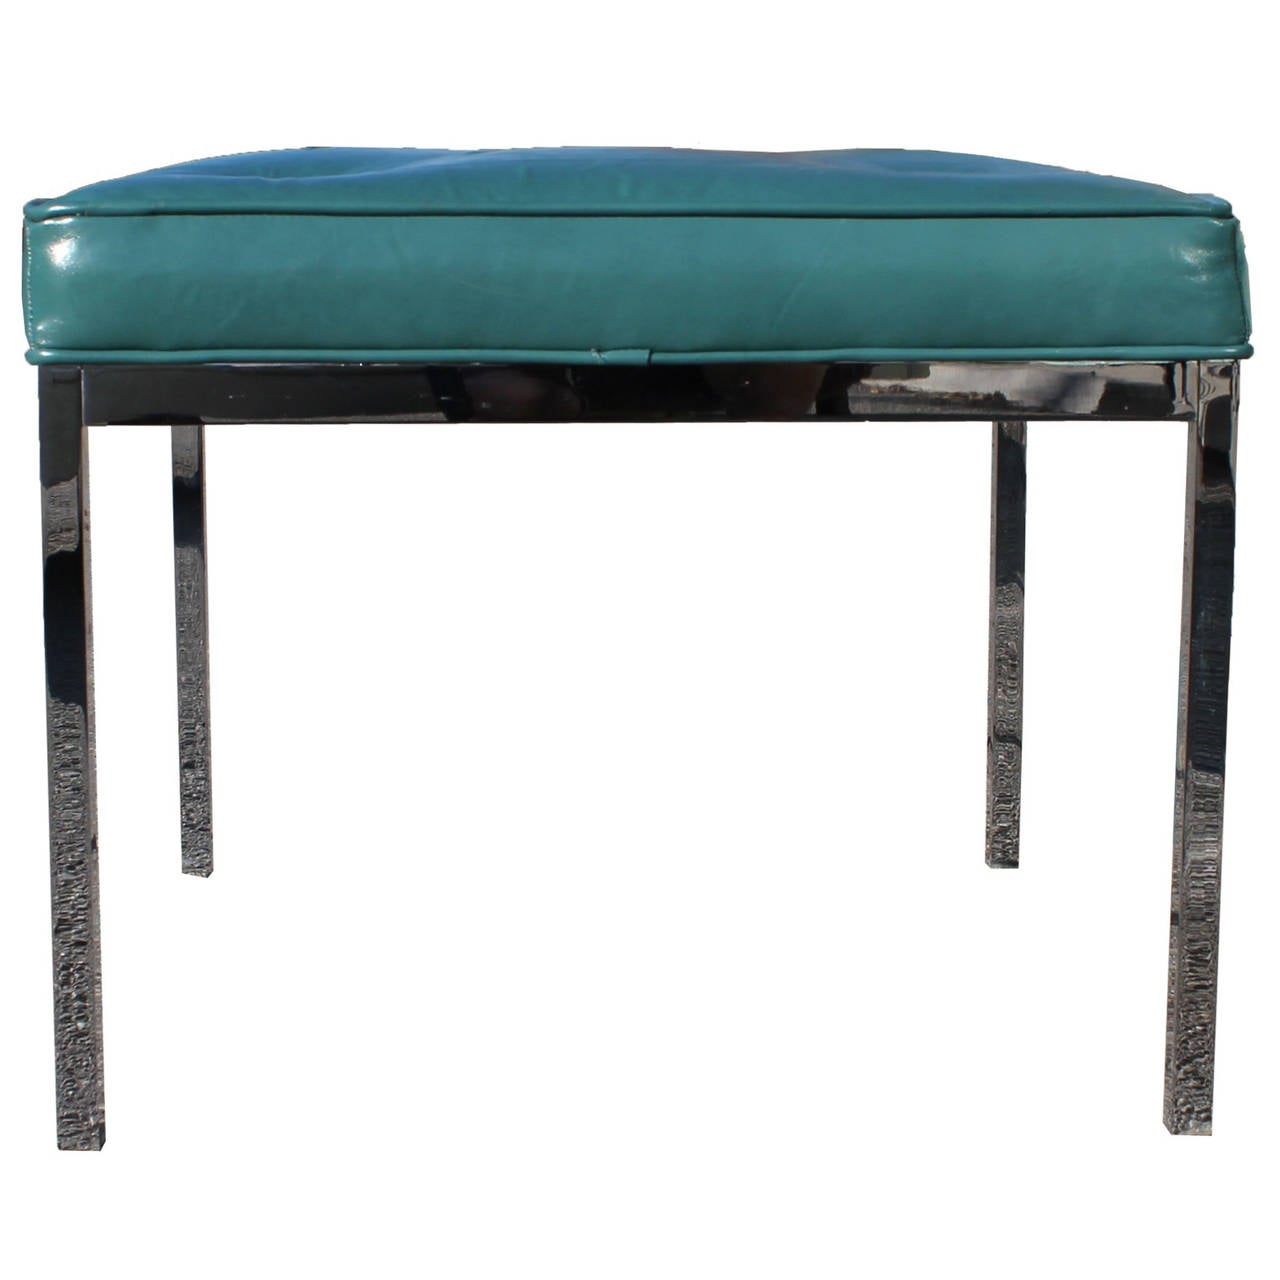 Teal leather ottoman teal leather and chrome bench for 18x7 garage door prices